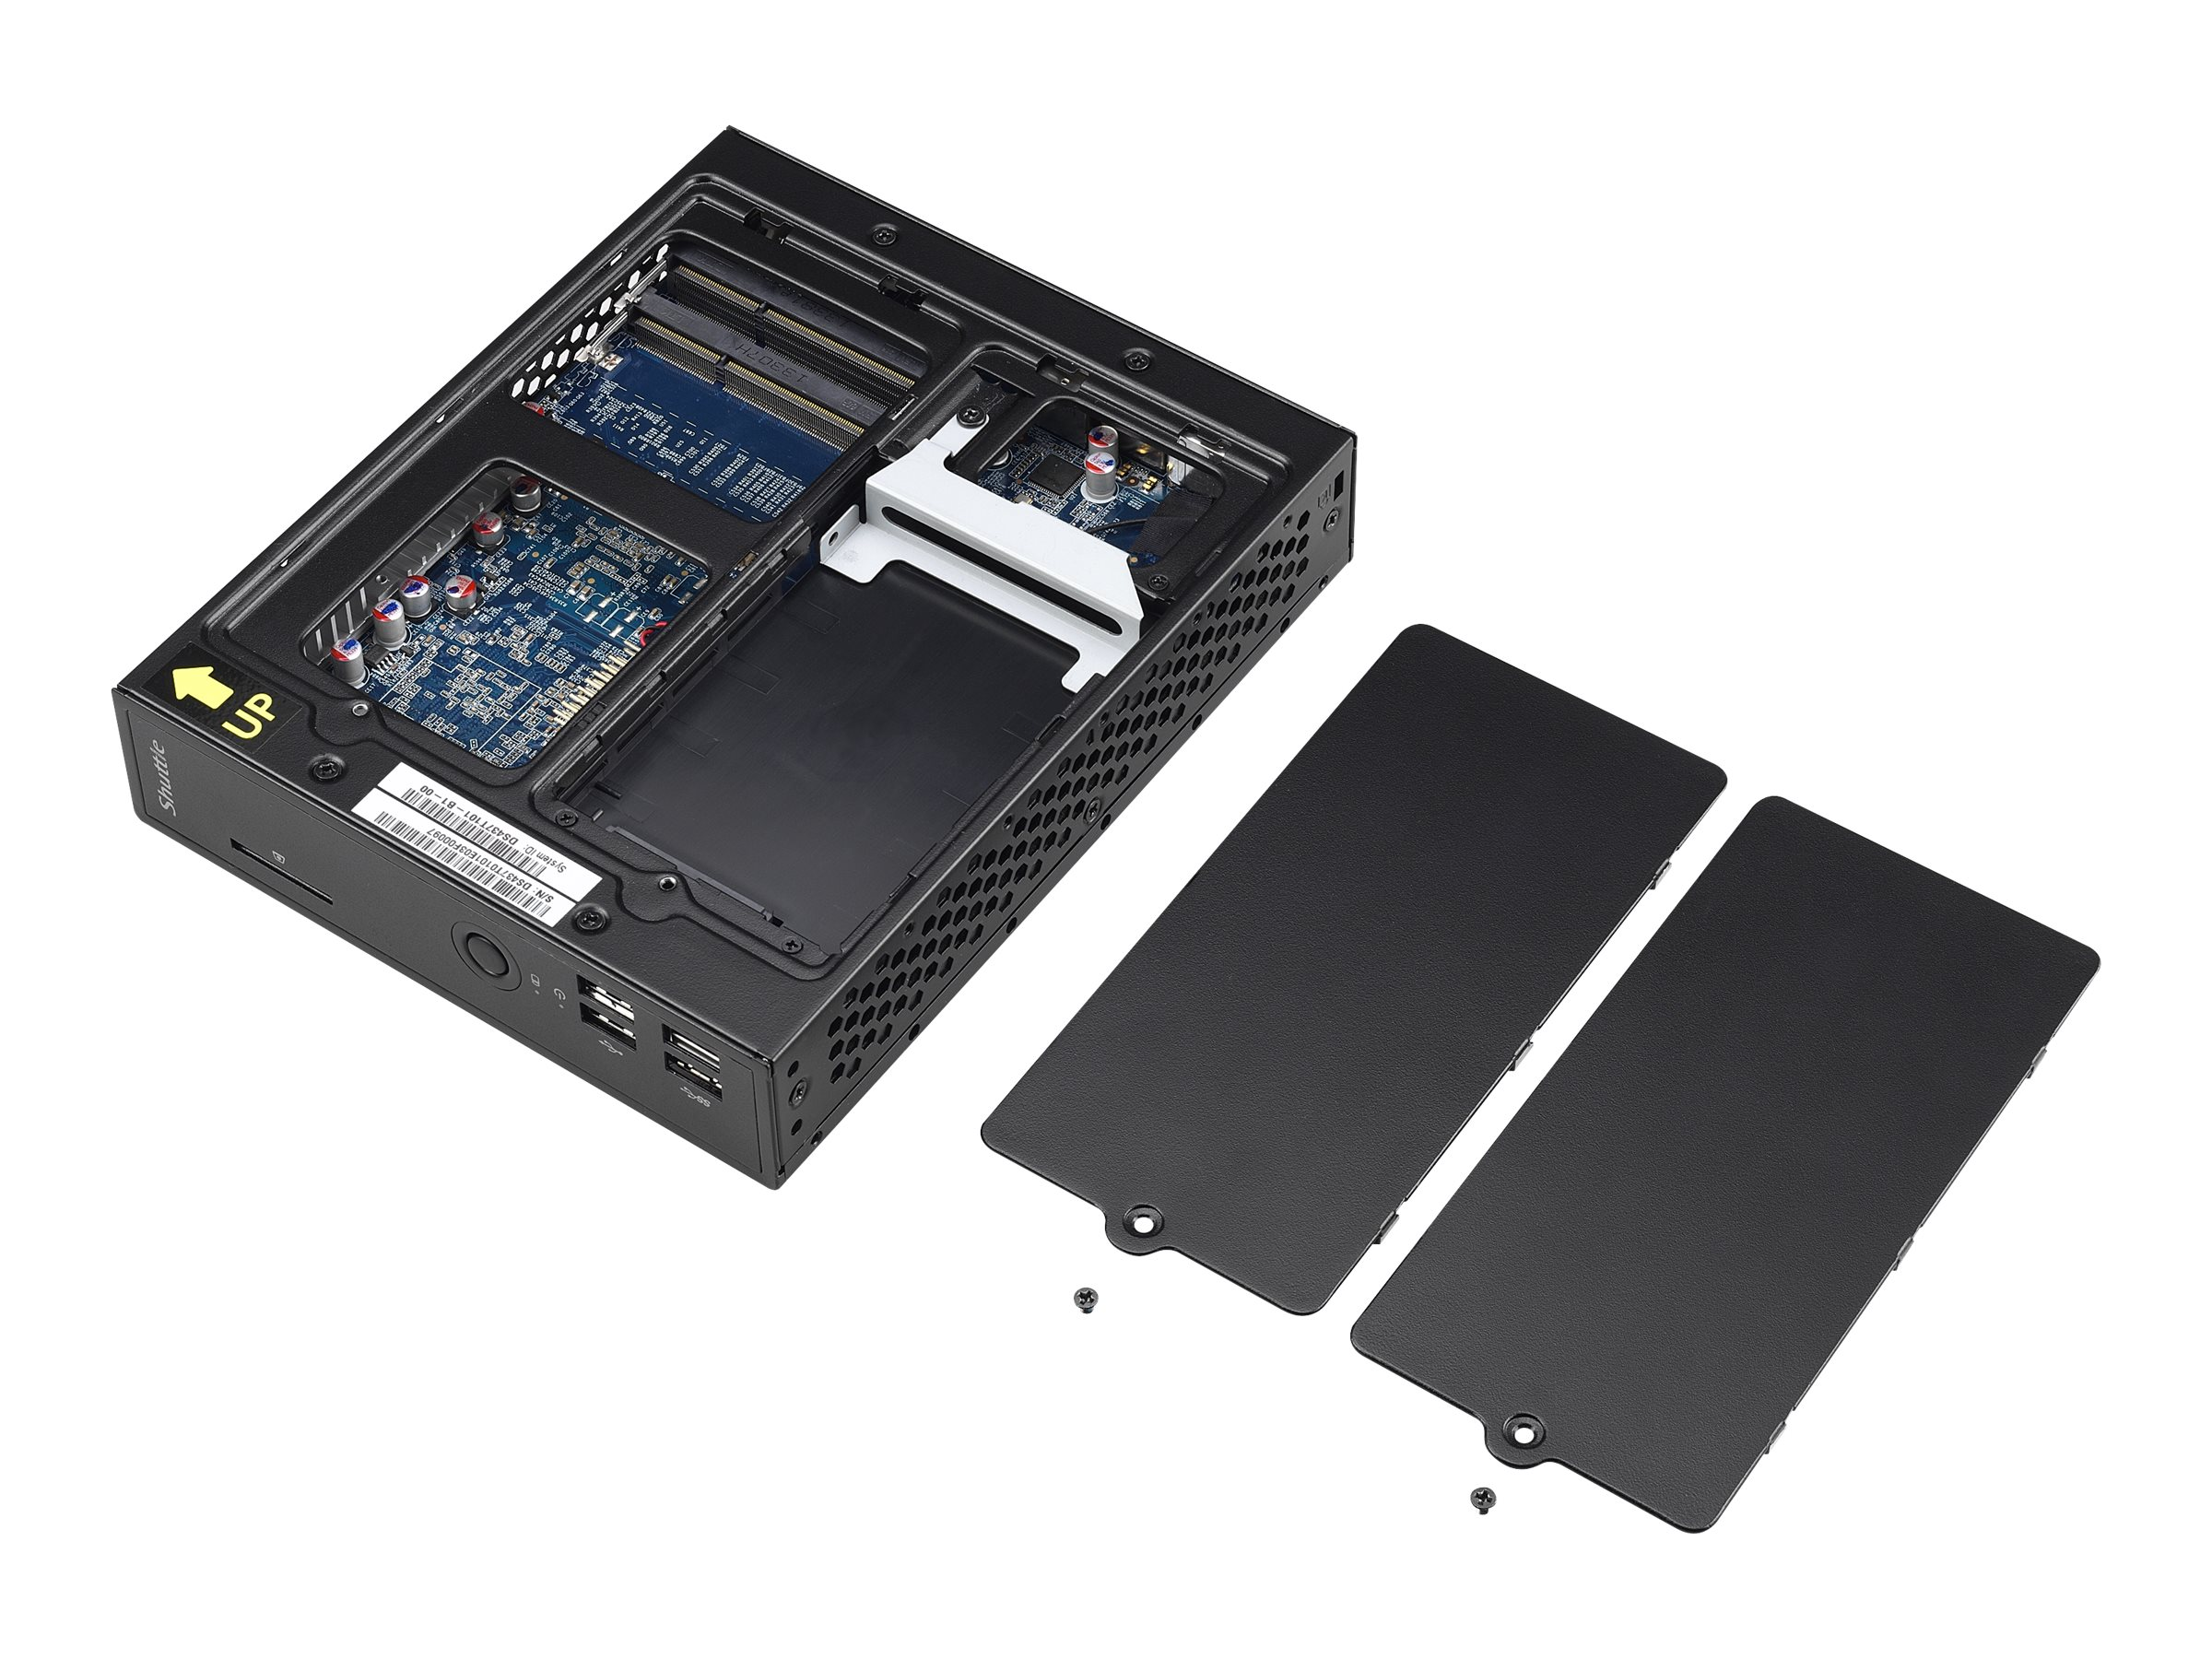 Shuttle Barebones, Desktop USFF Slim Celeron DC 1037U 1.8GHz Max.8GB DDR3 1x2.5 Bay 65W Fanless NoOS, Black